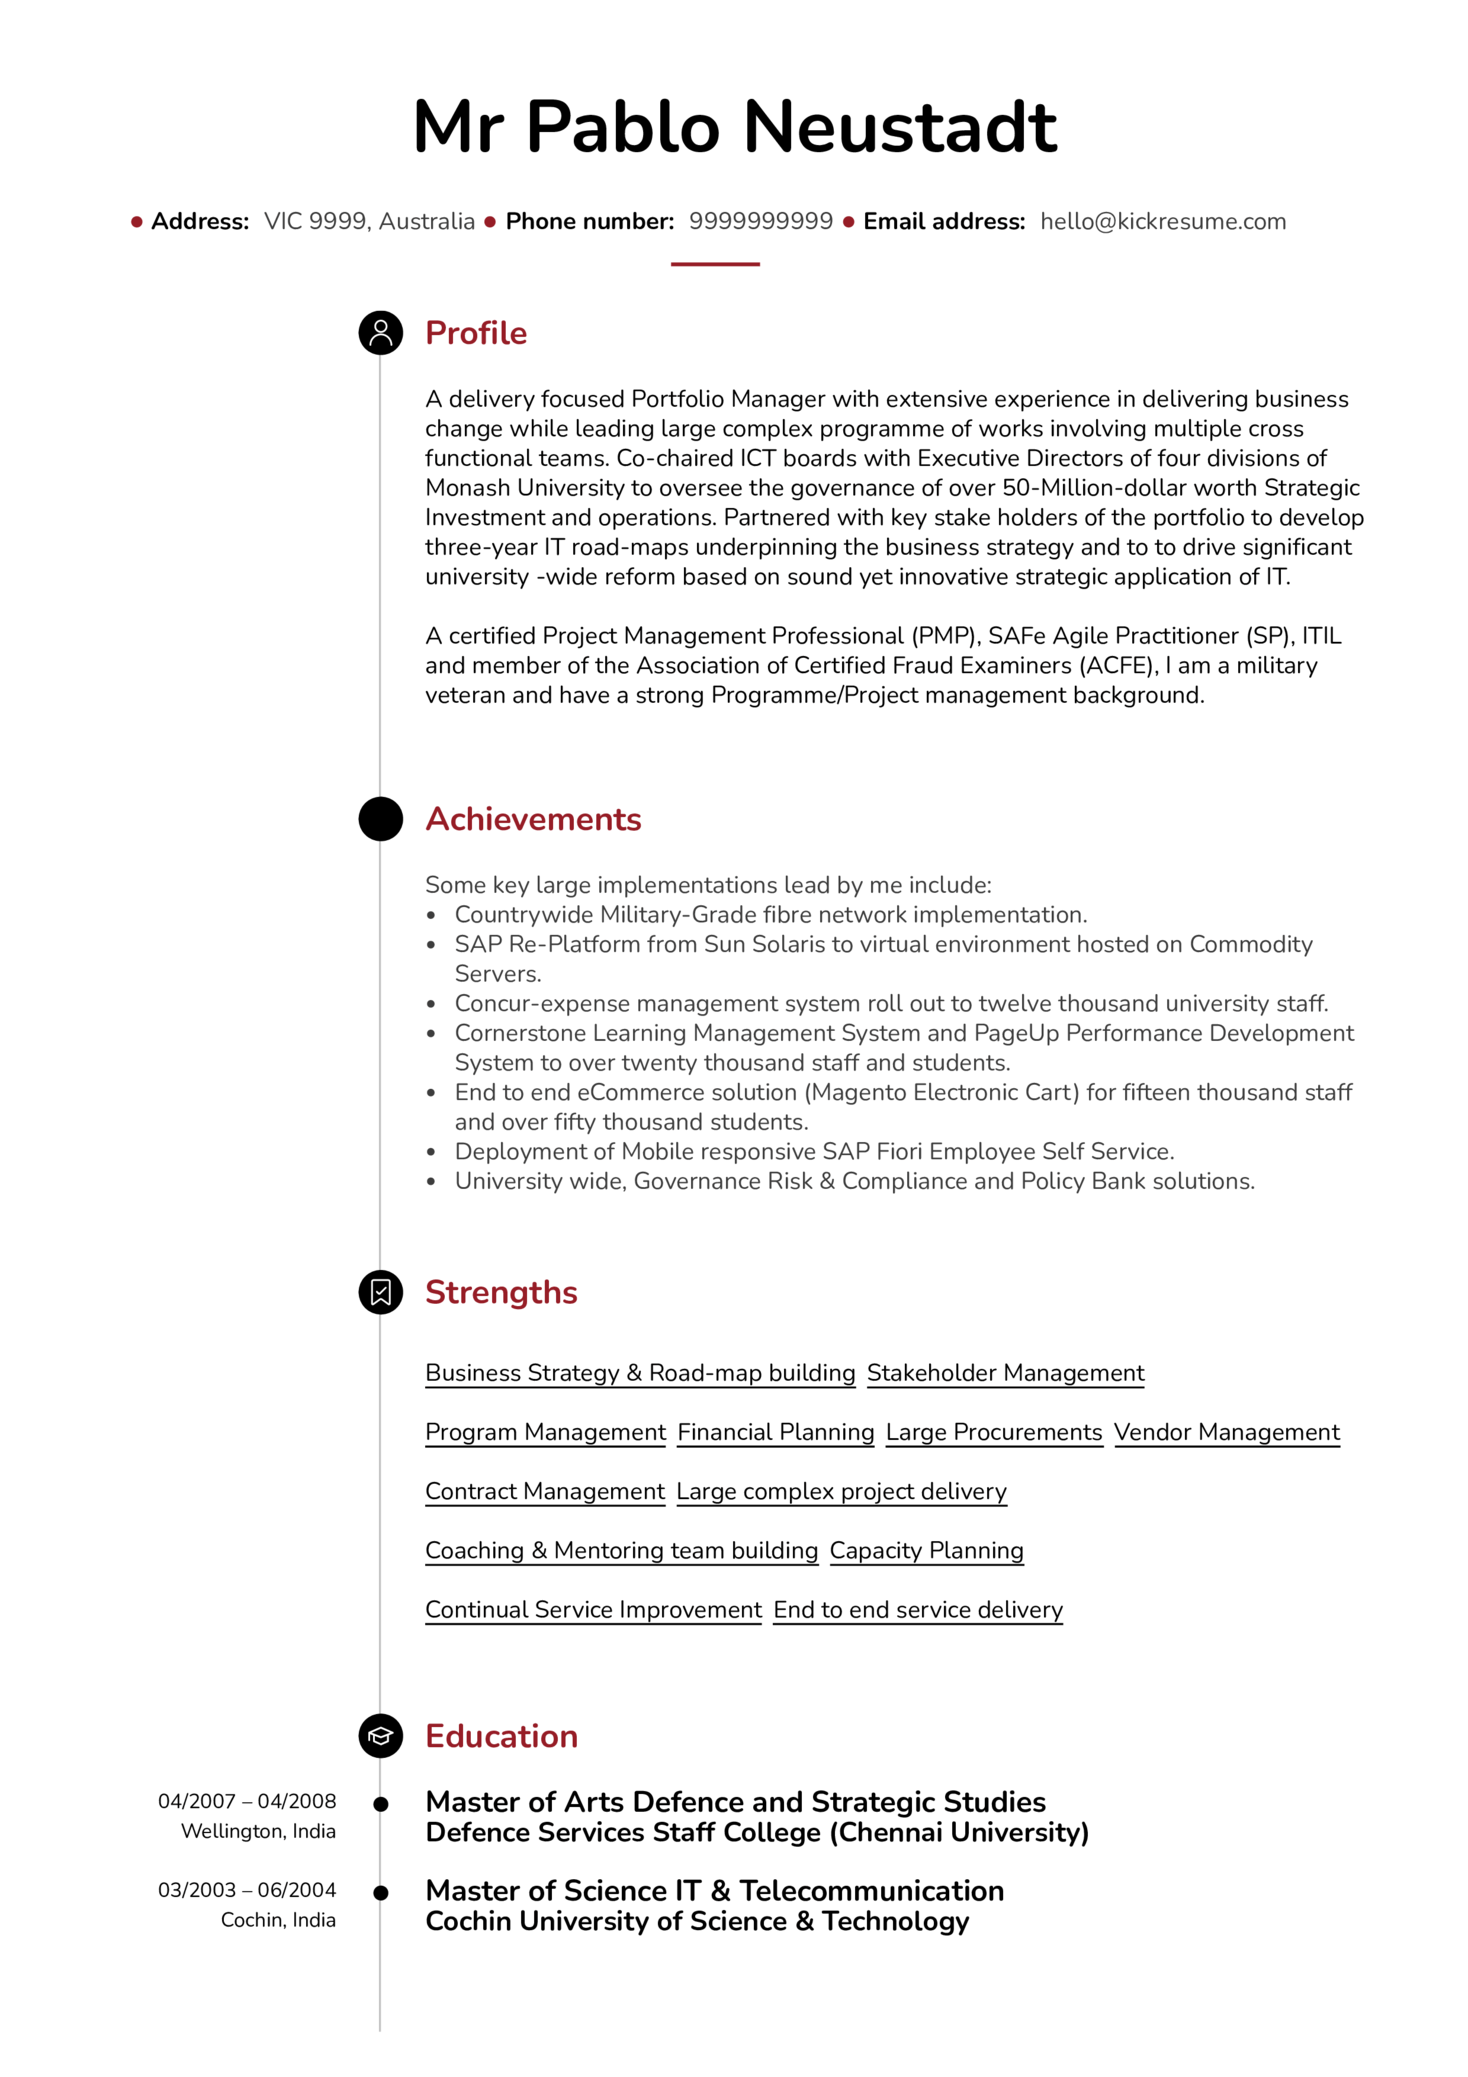 Senior project manager resume sample | Resume samples | Career help ...